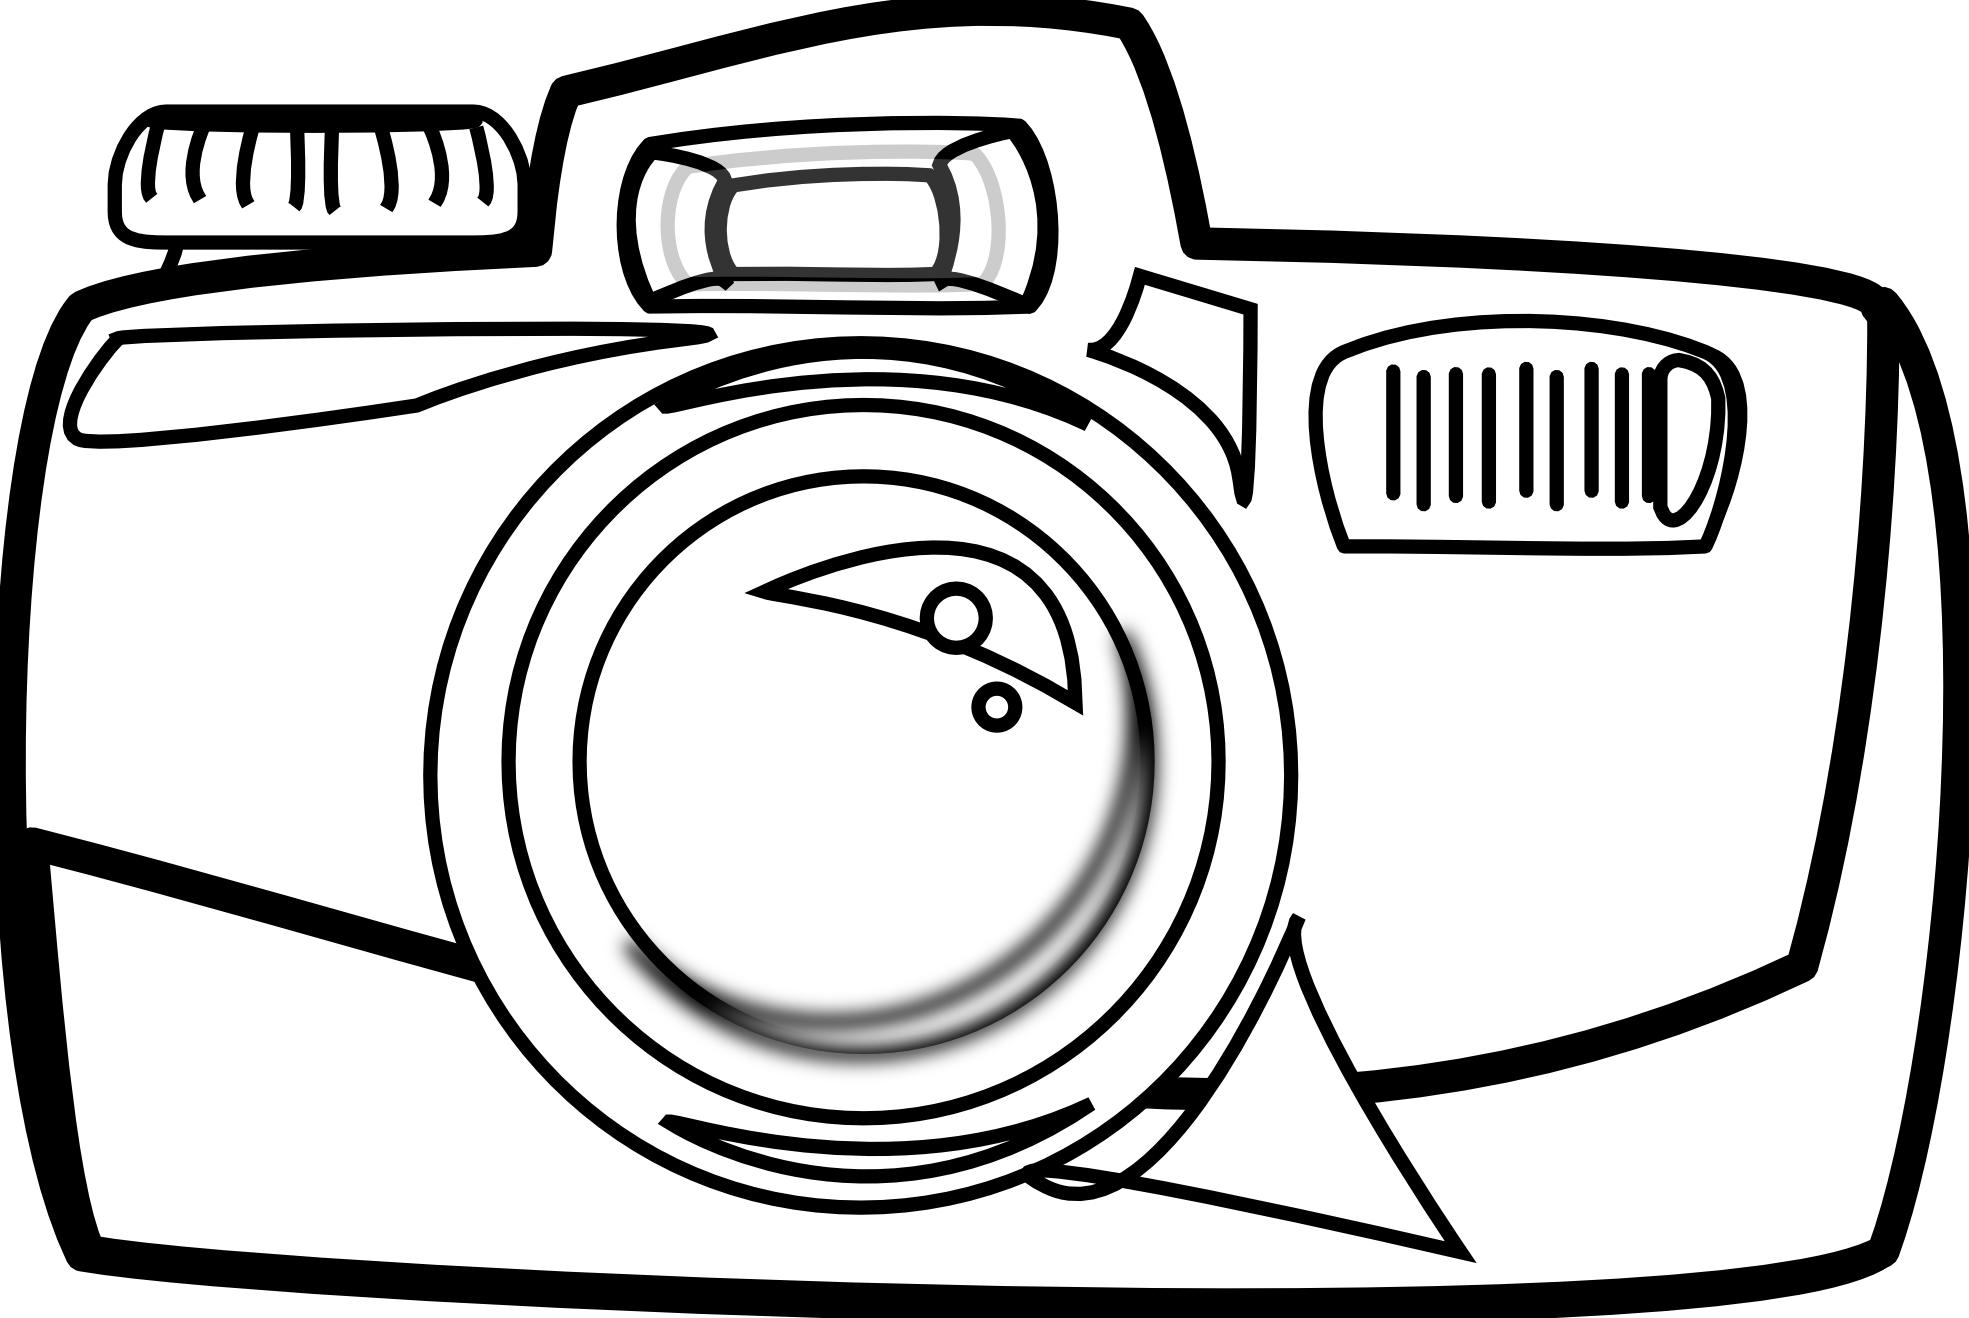 Camera clip art black and white. Clipart png panda free